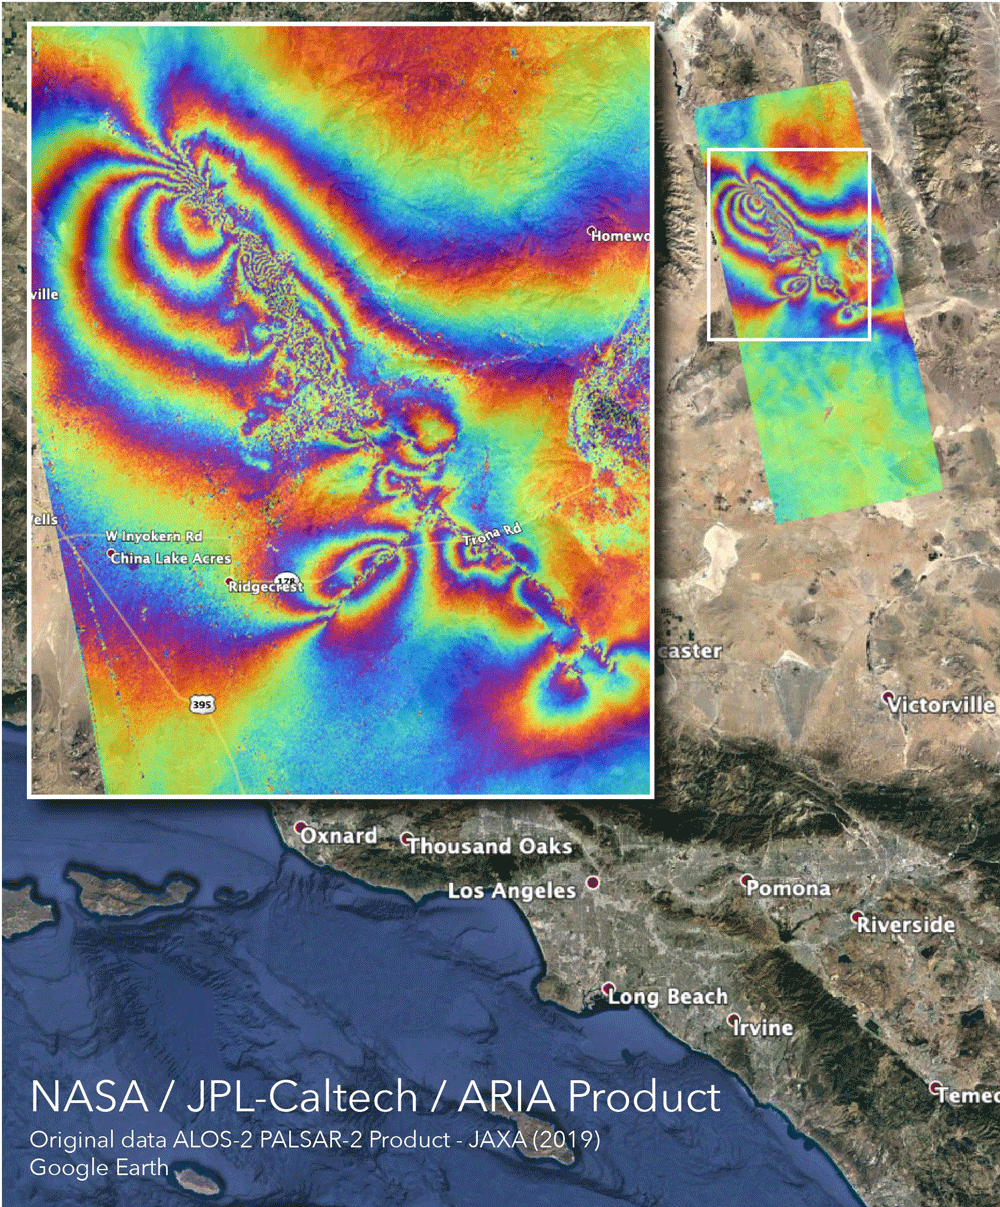 NASA's Advanced Rapid Imaging and Analysis (ARIA) team created this co-seismic Interferometric Synthetic Aperture Radar (InSAR) map, which shows surface displacement caused by the recent major earthquakes in Southern California, including the magnitude 6.4 and the magnitude 7.1 events on July 4 and July 5, 2019, respectively. Credits: NASA/JPL-Caltech